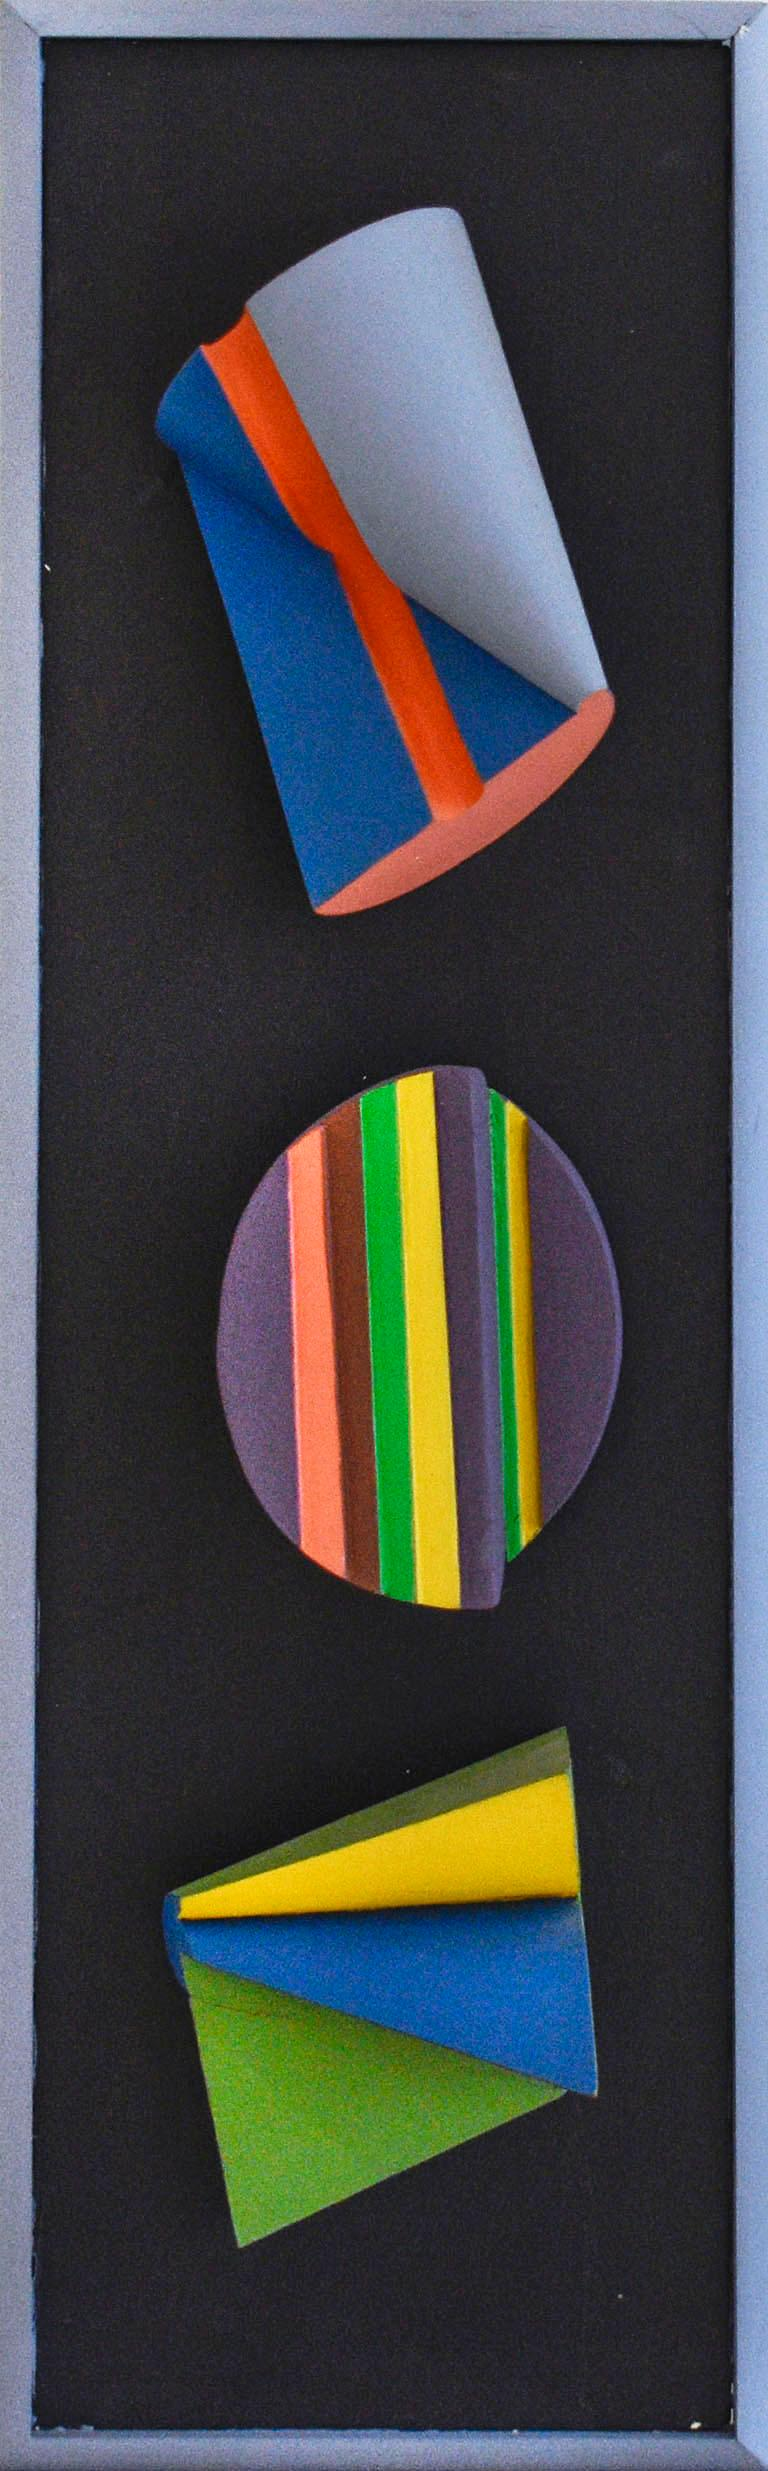 Leon Smith Abstract Sculpture - Trio: Colorful Abstract Geometric Three Dimensional Wall Sculpture on Panel